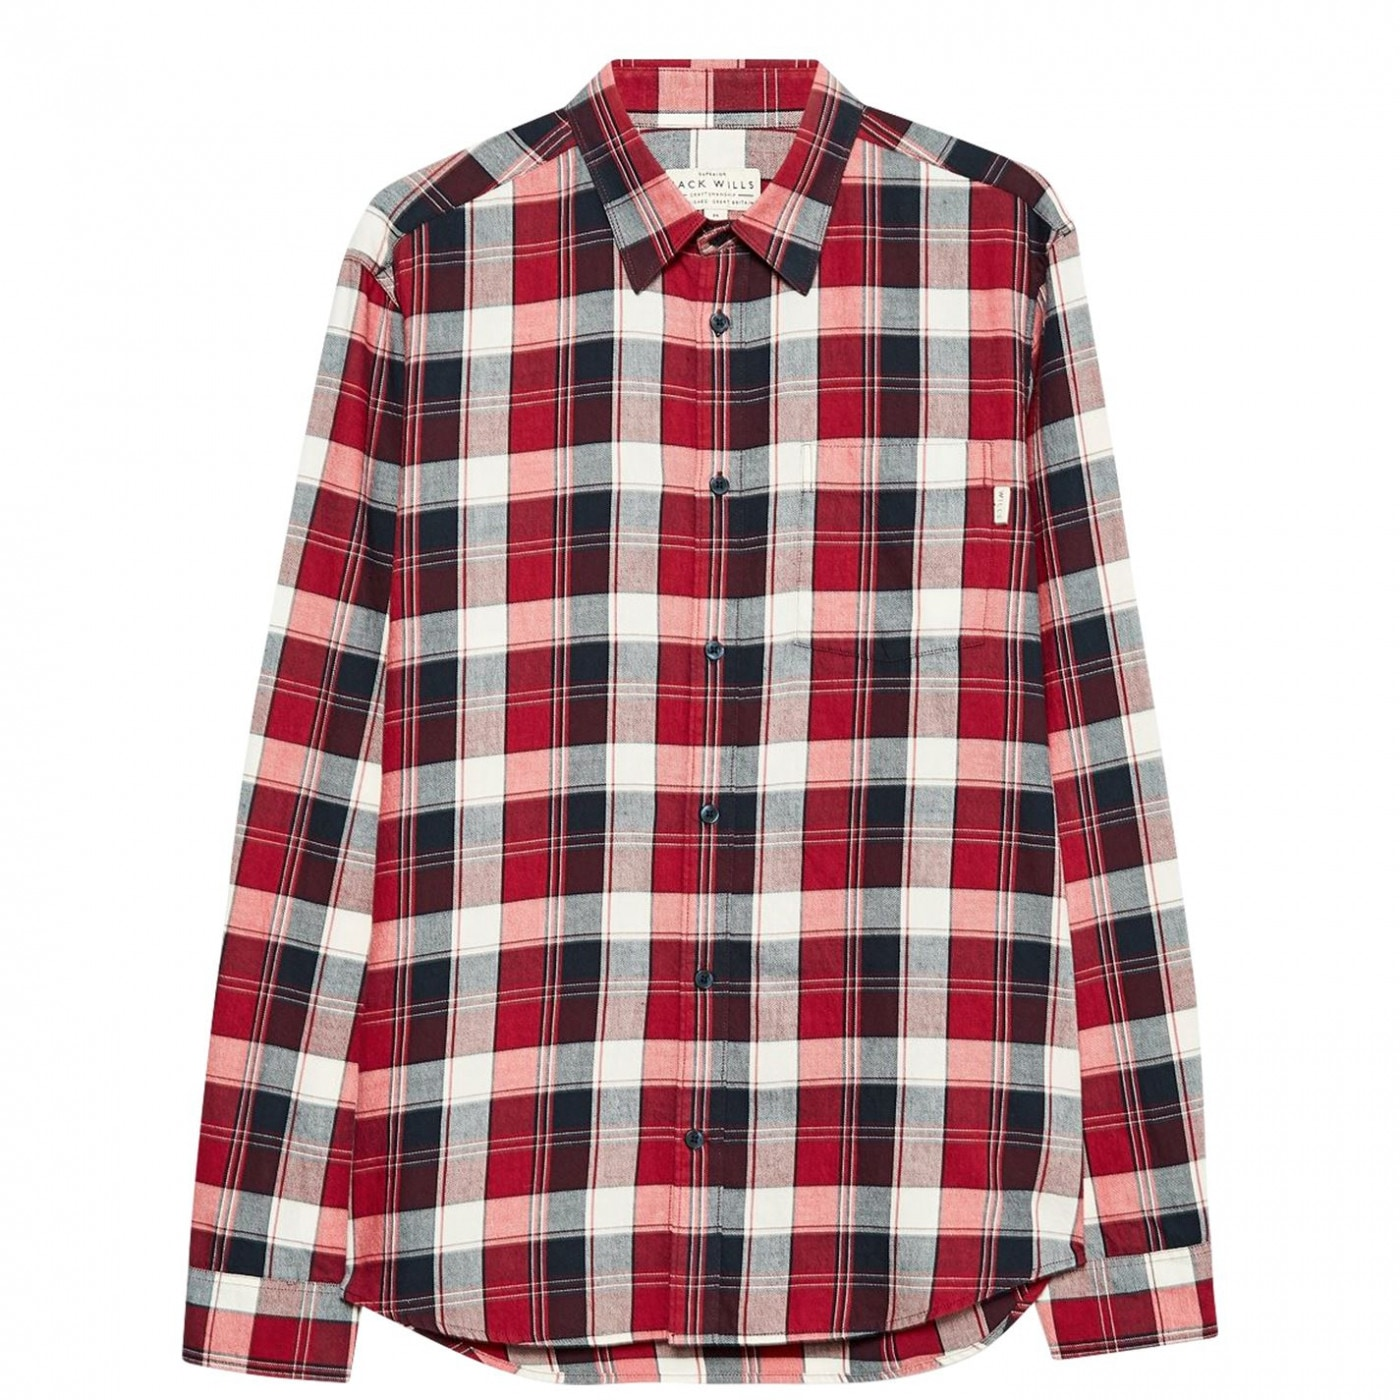 Jack Wills Dundry Flannel Check Shirt